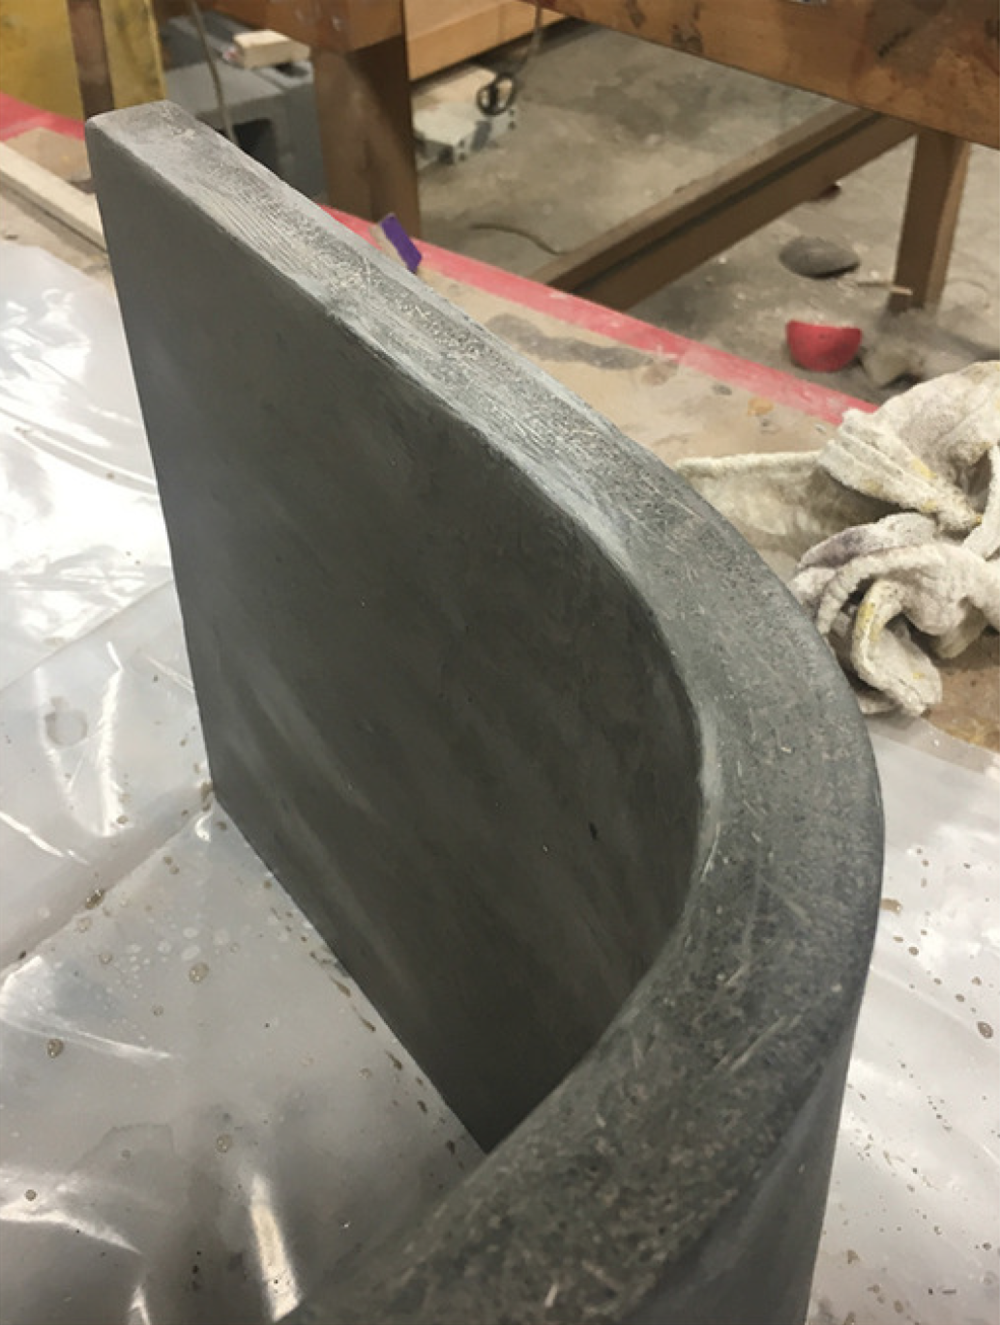 8. After sanding the piece for more than 10 hours,the finish on the concrete improved by a lot and was very smooth.